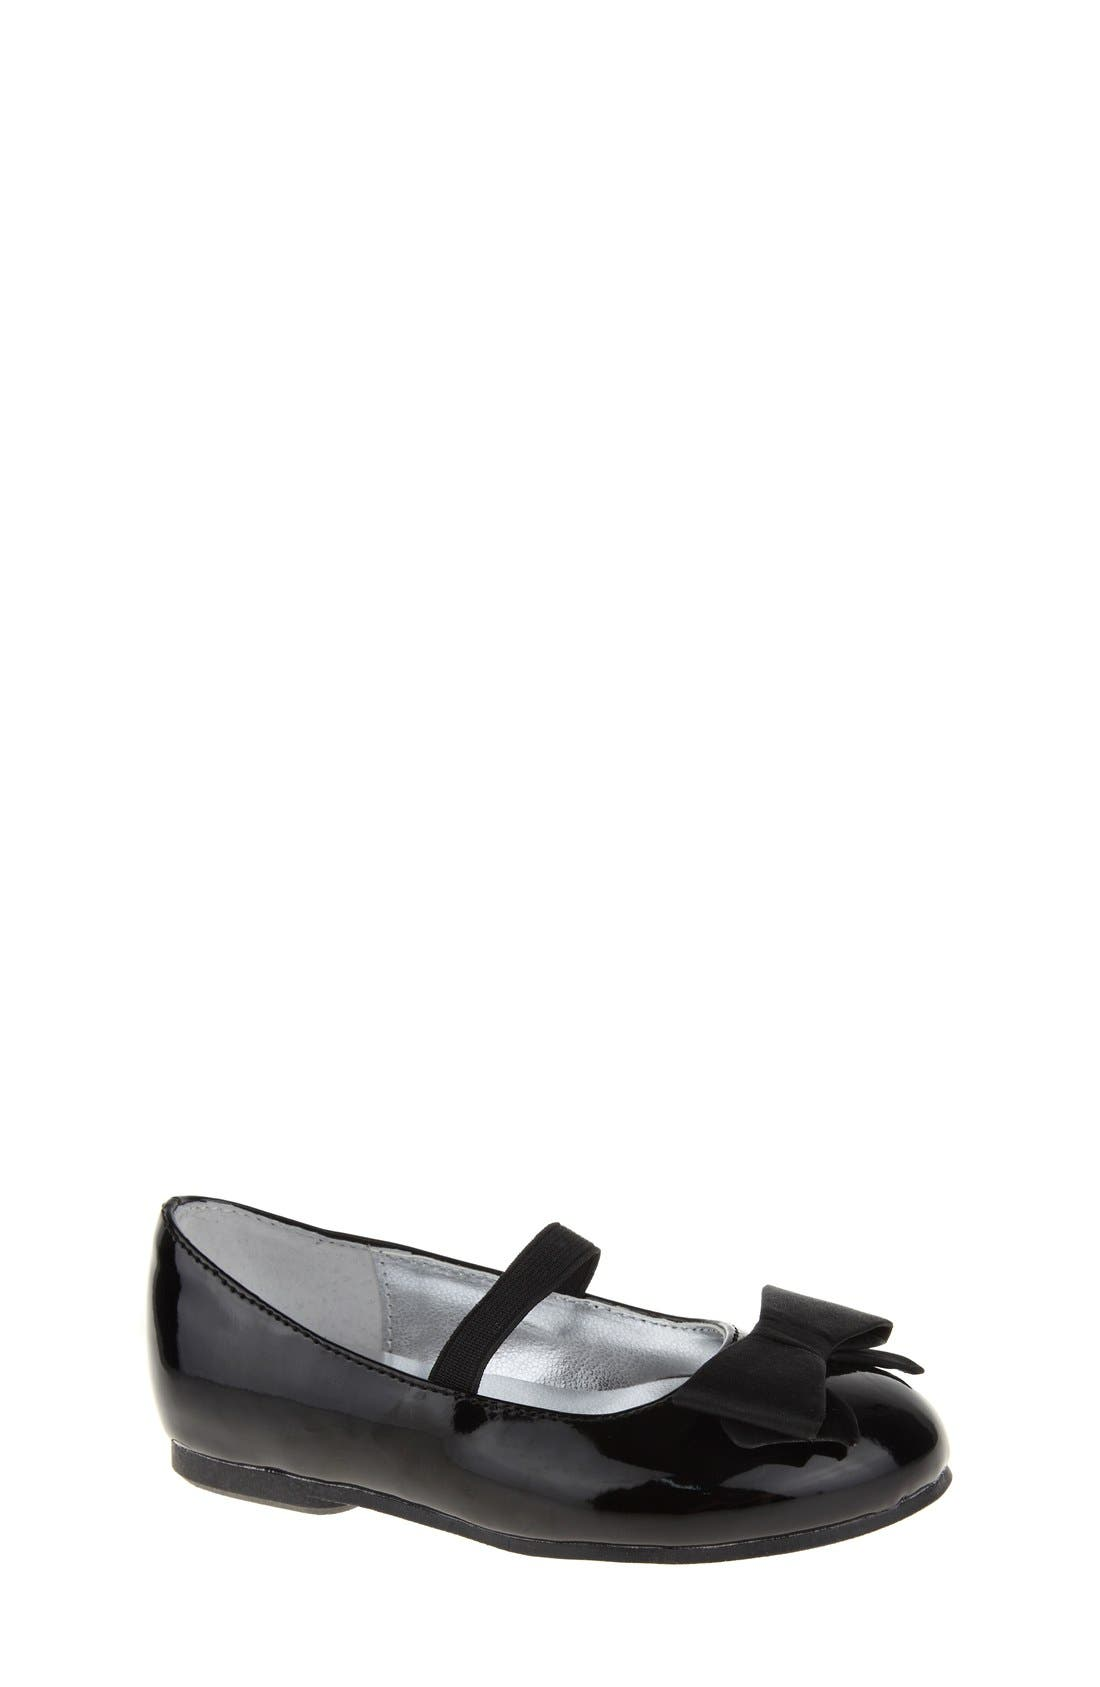 'Pegasus' Flat,                         Main,                         color, BLACK PATENT